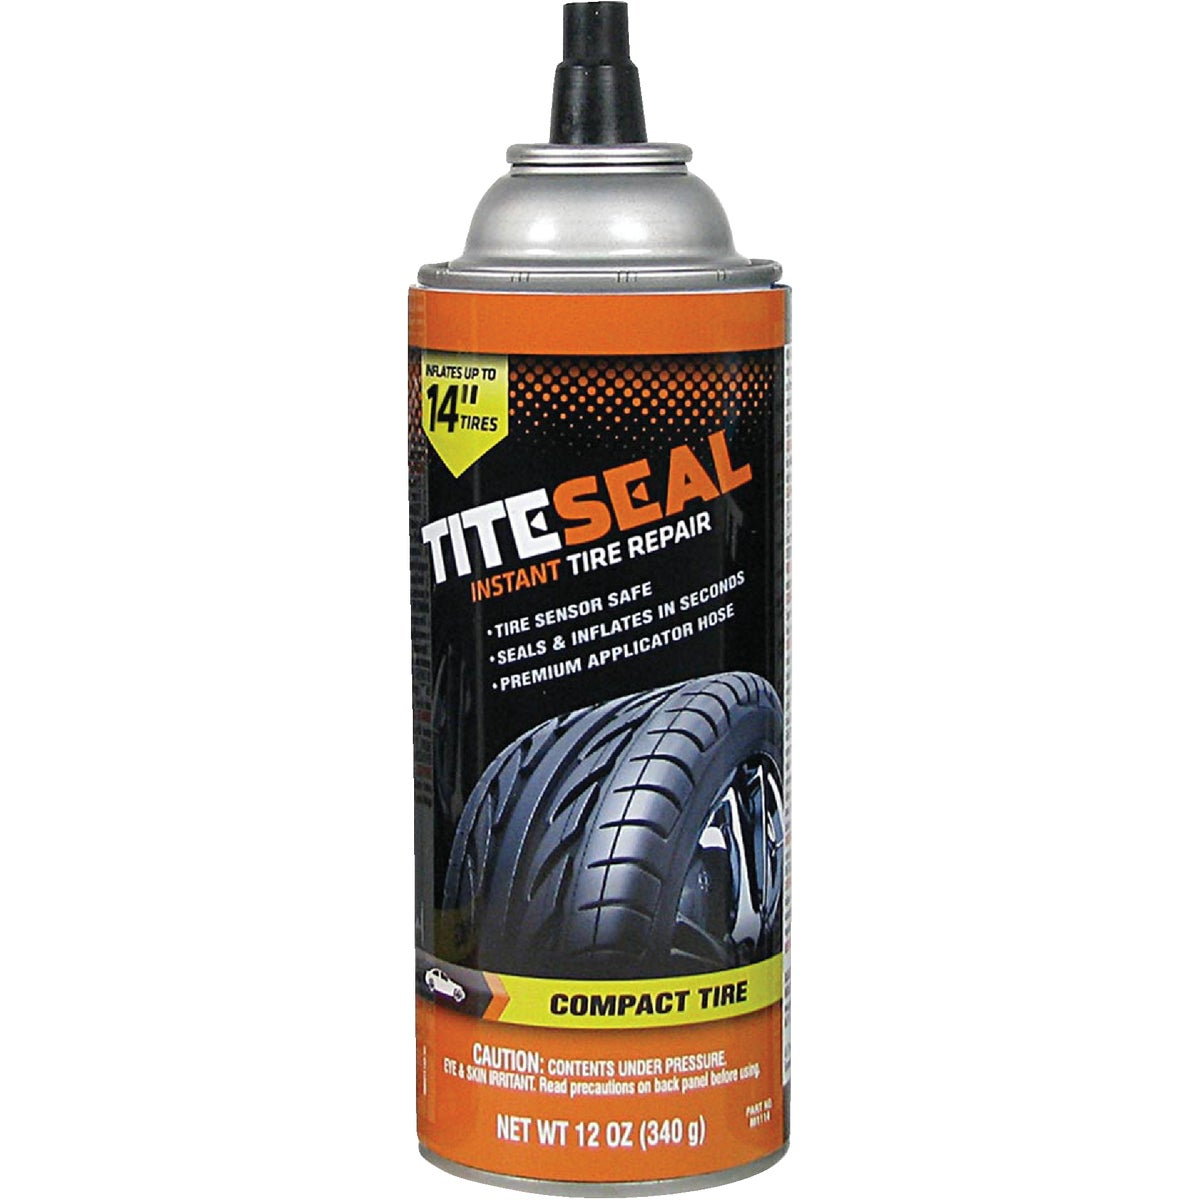 Radiator Specialty TIRE PUNCTURE SEAL M1114/6